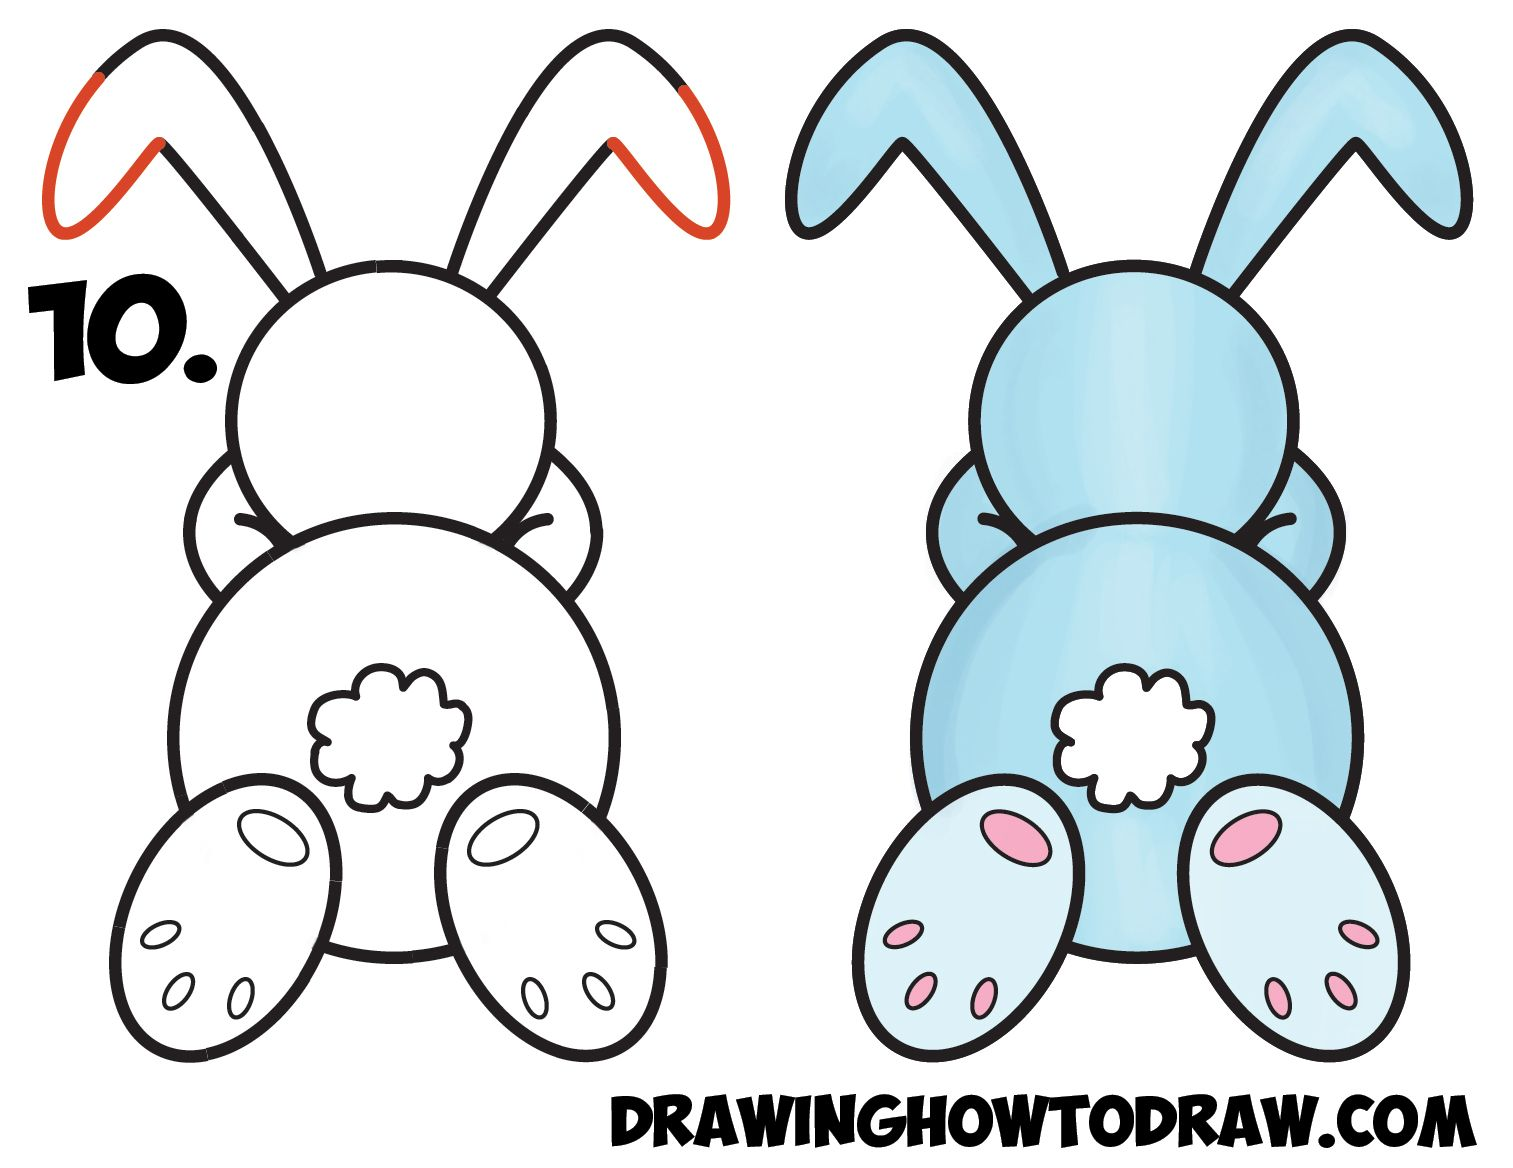 Uncategorized How To Draw A Rabbit For Kids learn how to draw a cute cartoon sleeping bunny rabbit from 8 shape simple steps drawing lesson for kids and preschoolers